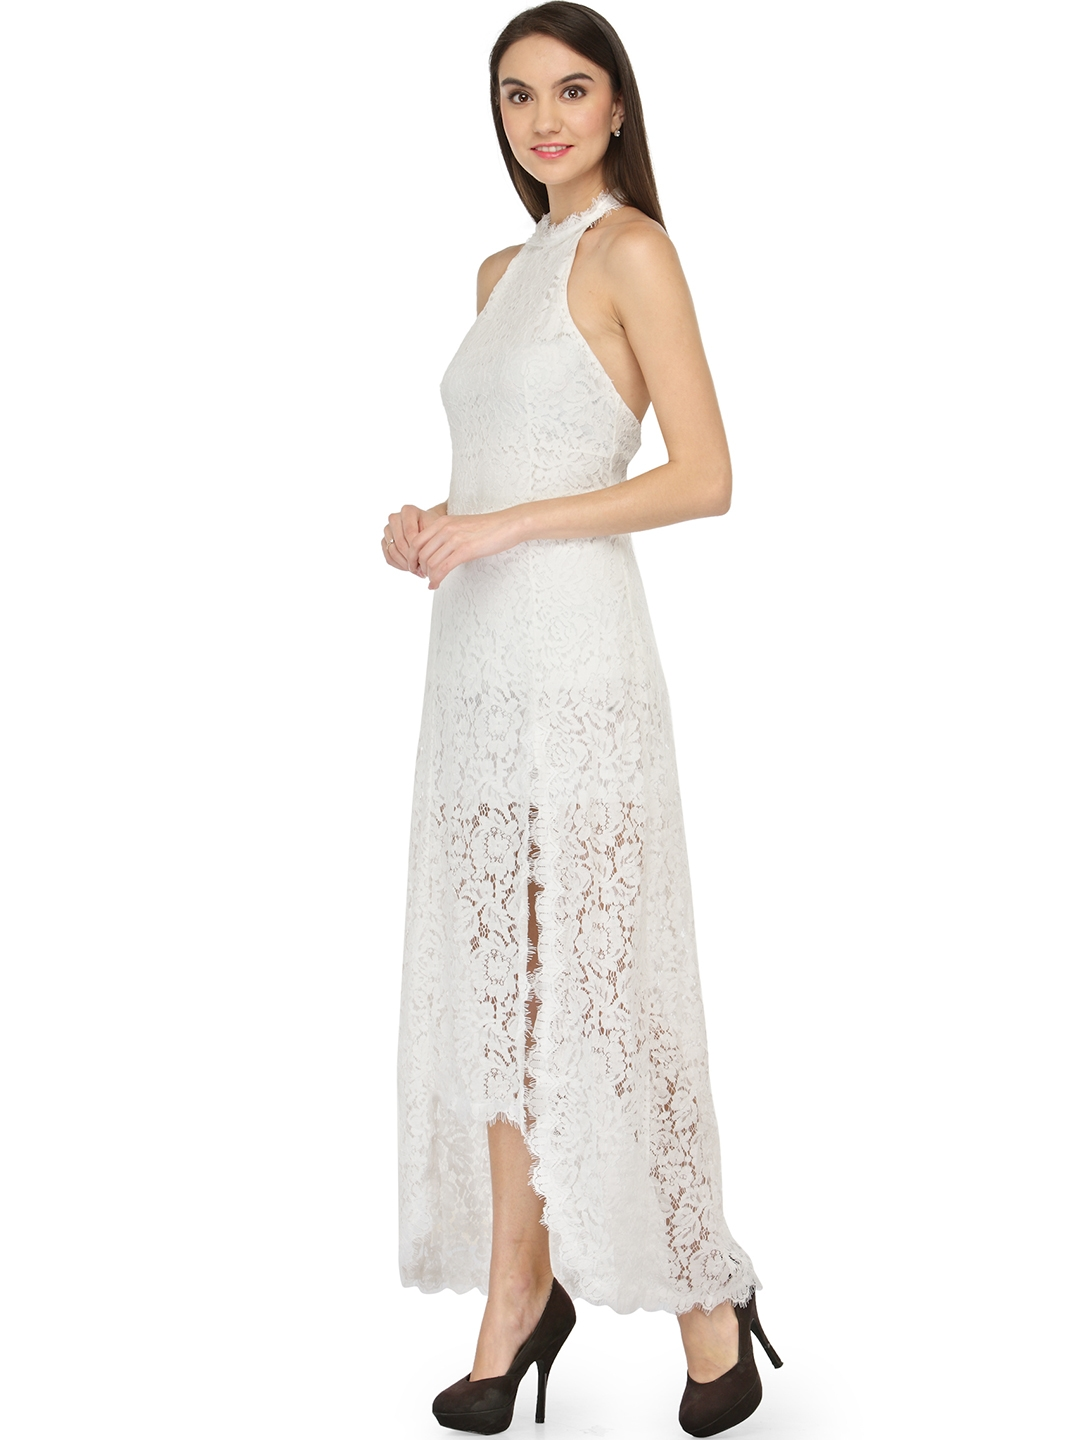 White Lace High Low Dress